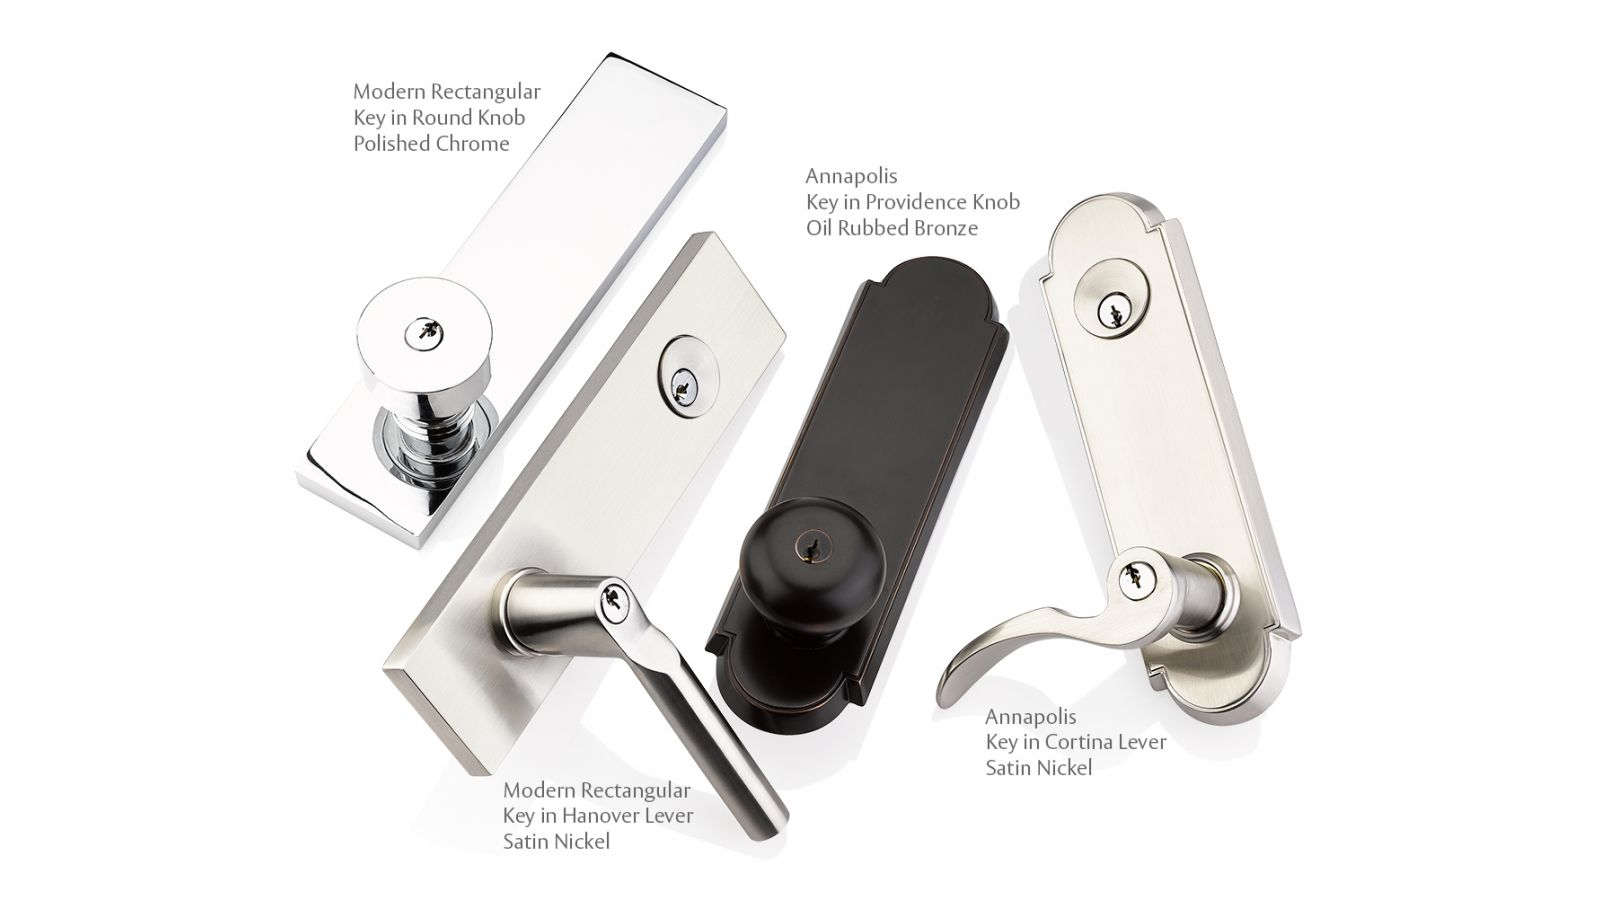 Modern Rectangular and Annapolis single and two point lockset trim styles